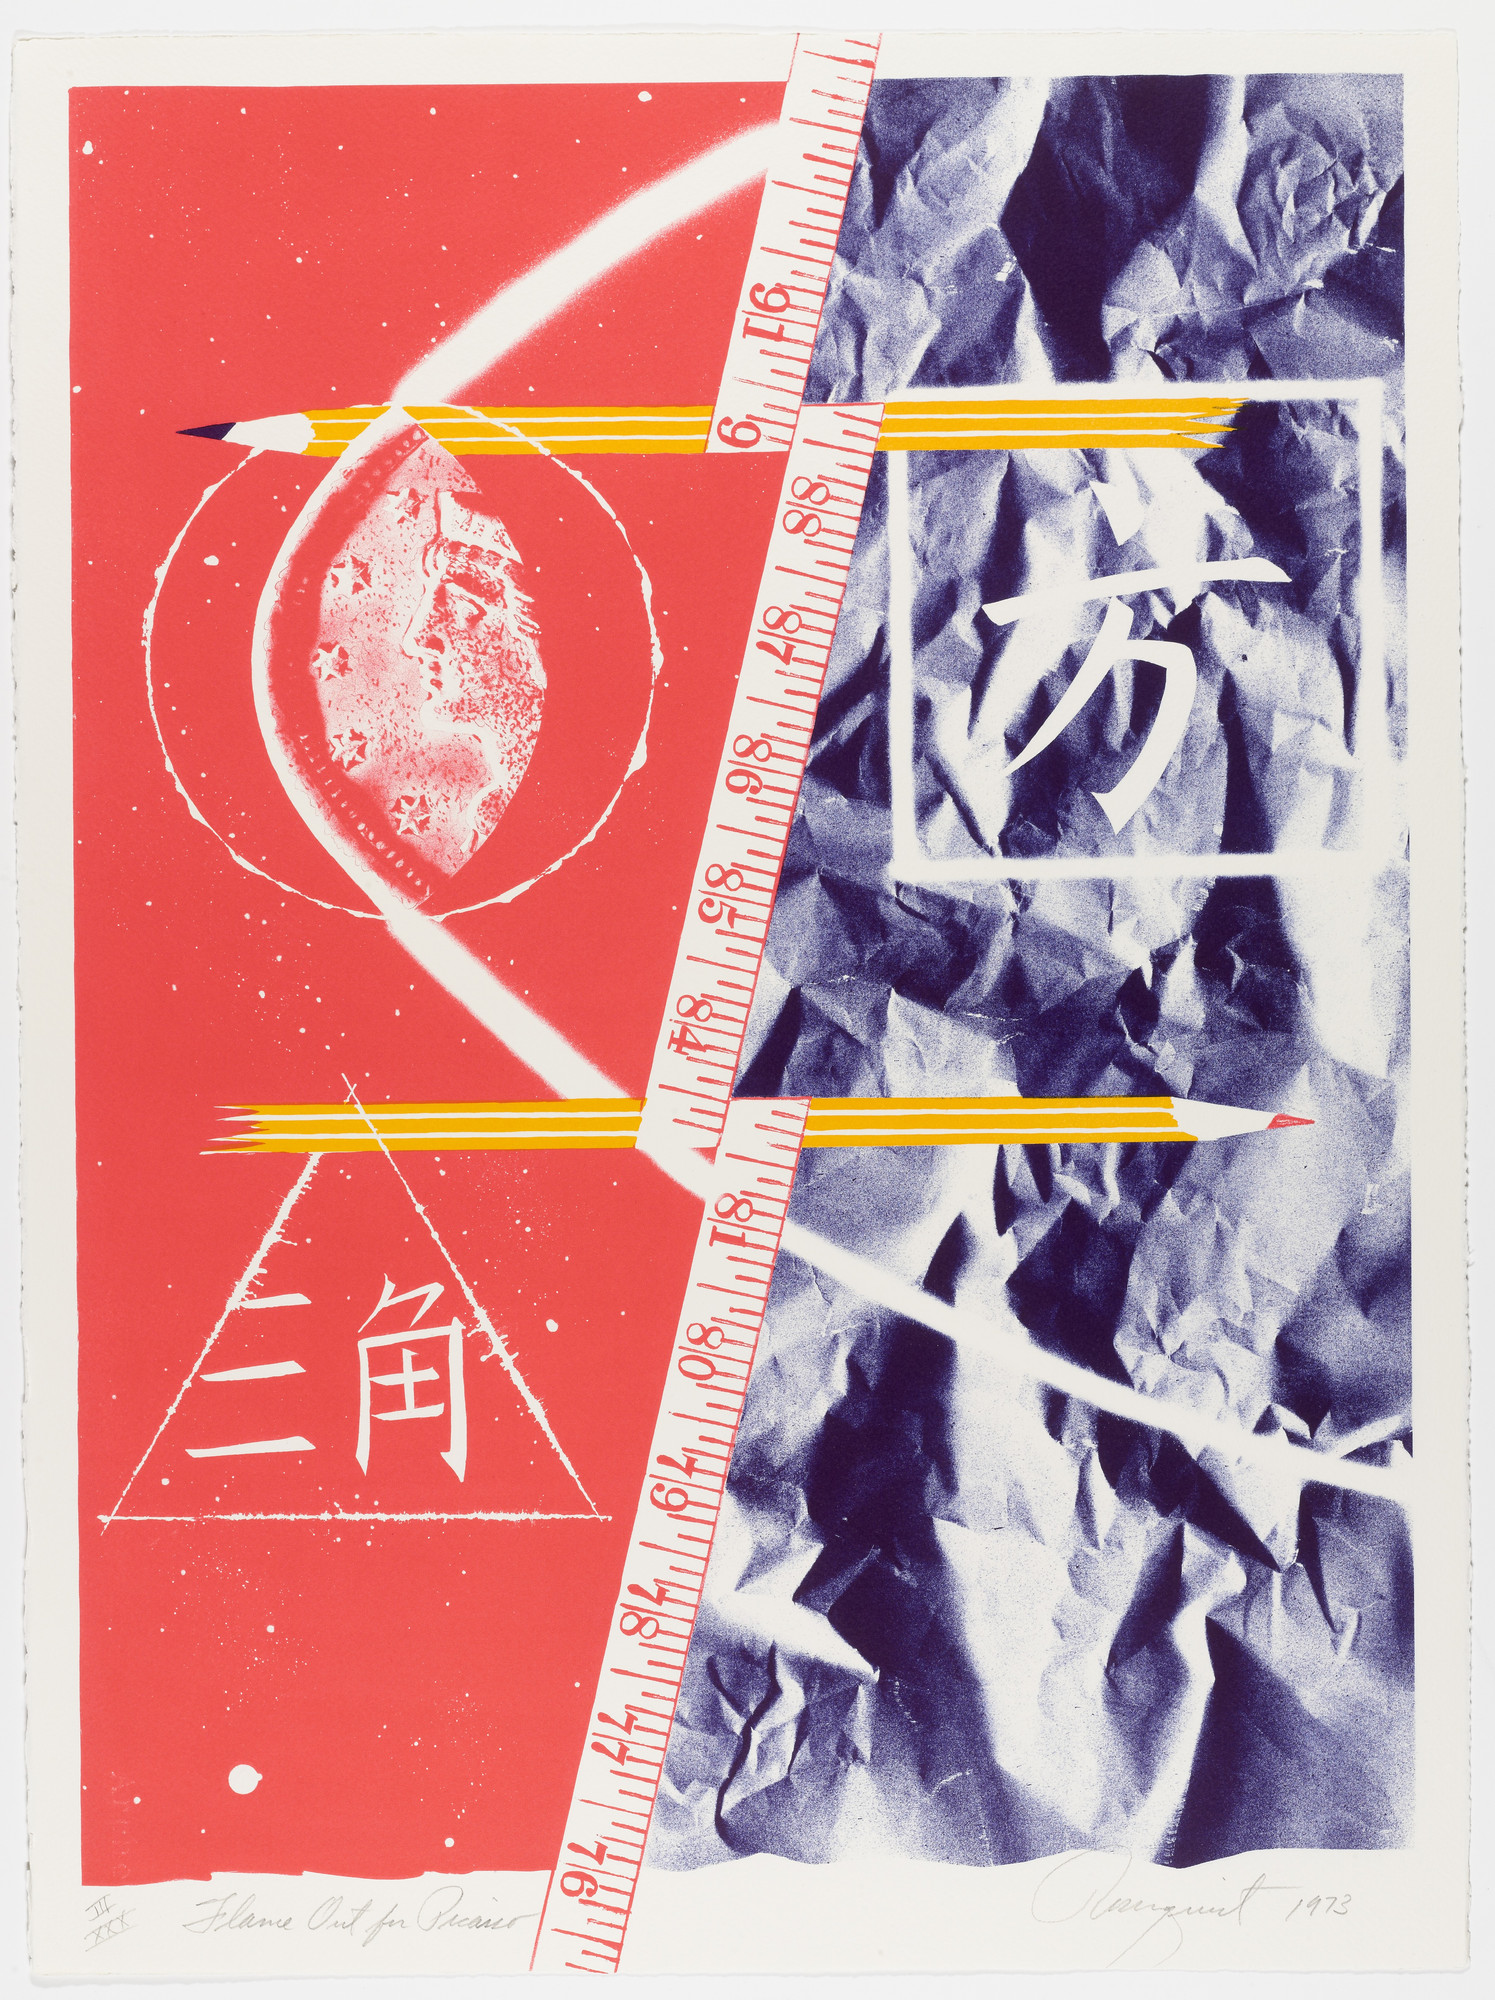 James Rosenquist. Flame Out For Picasso from Homage to Picasso (Hommage à Picasso). 1973, published 1975